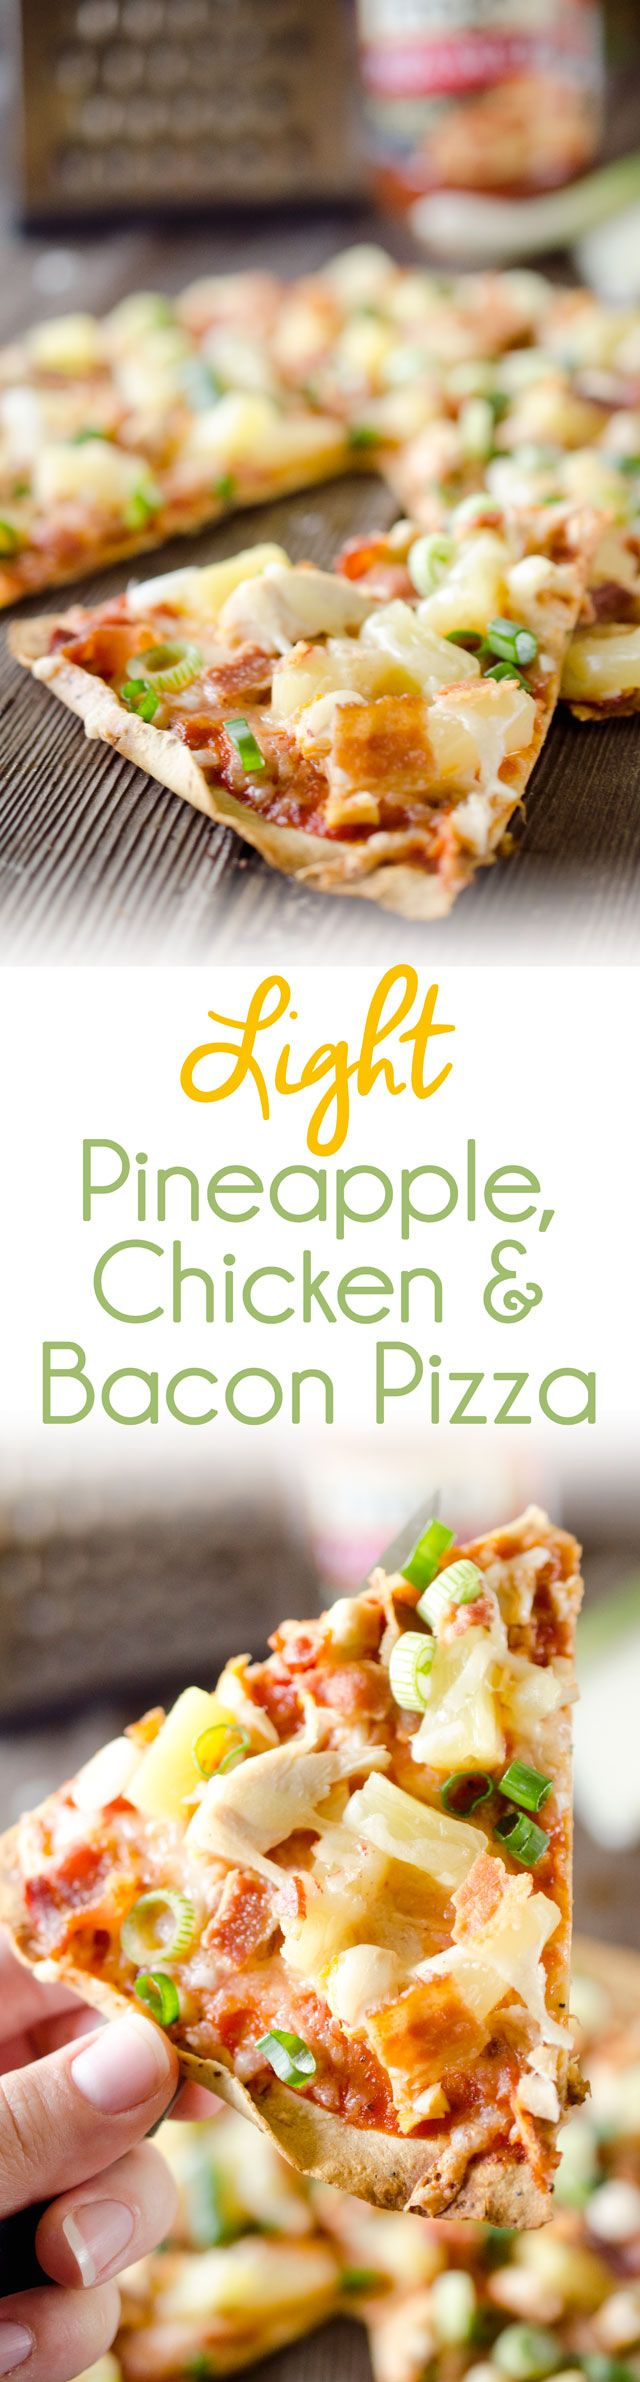 Light Pineapple, Chicken U0026 Bacon Pizza Is An Easy And Healthy Dinner For Two  With